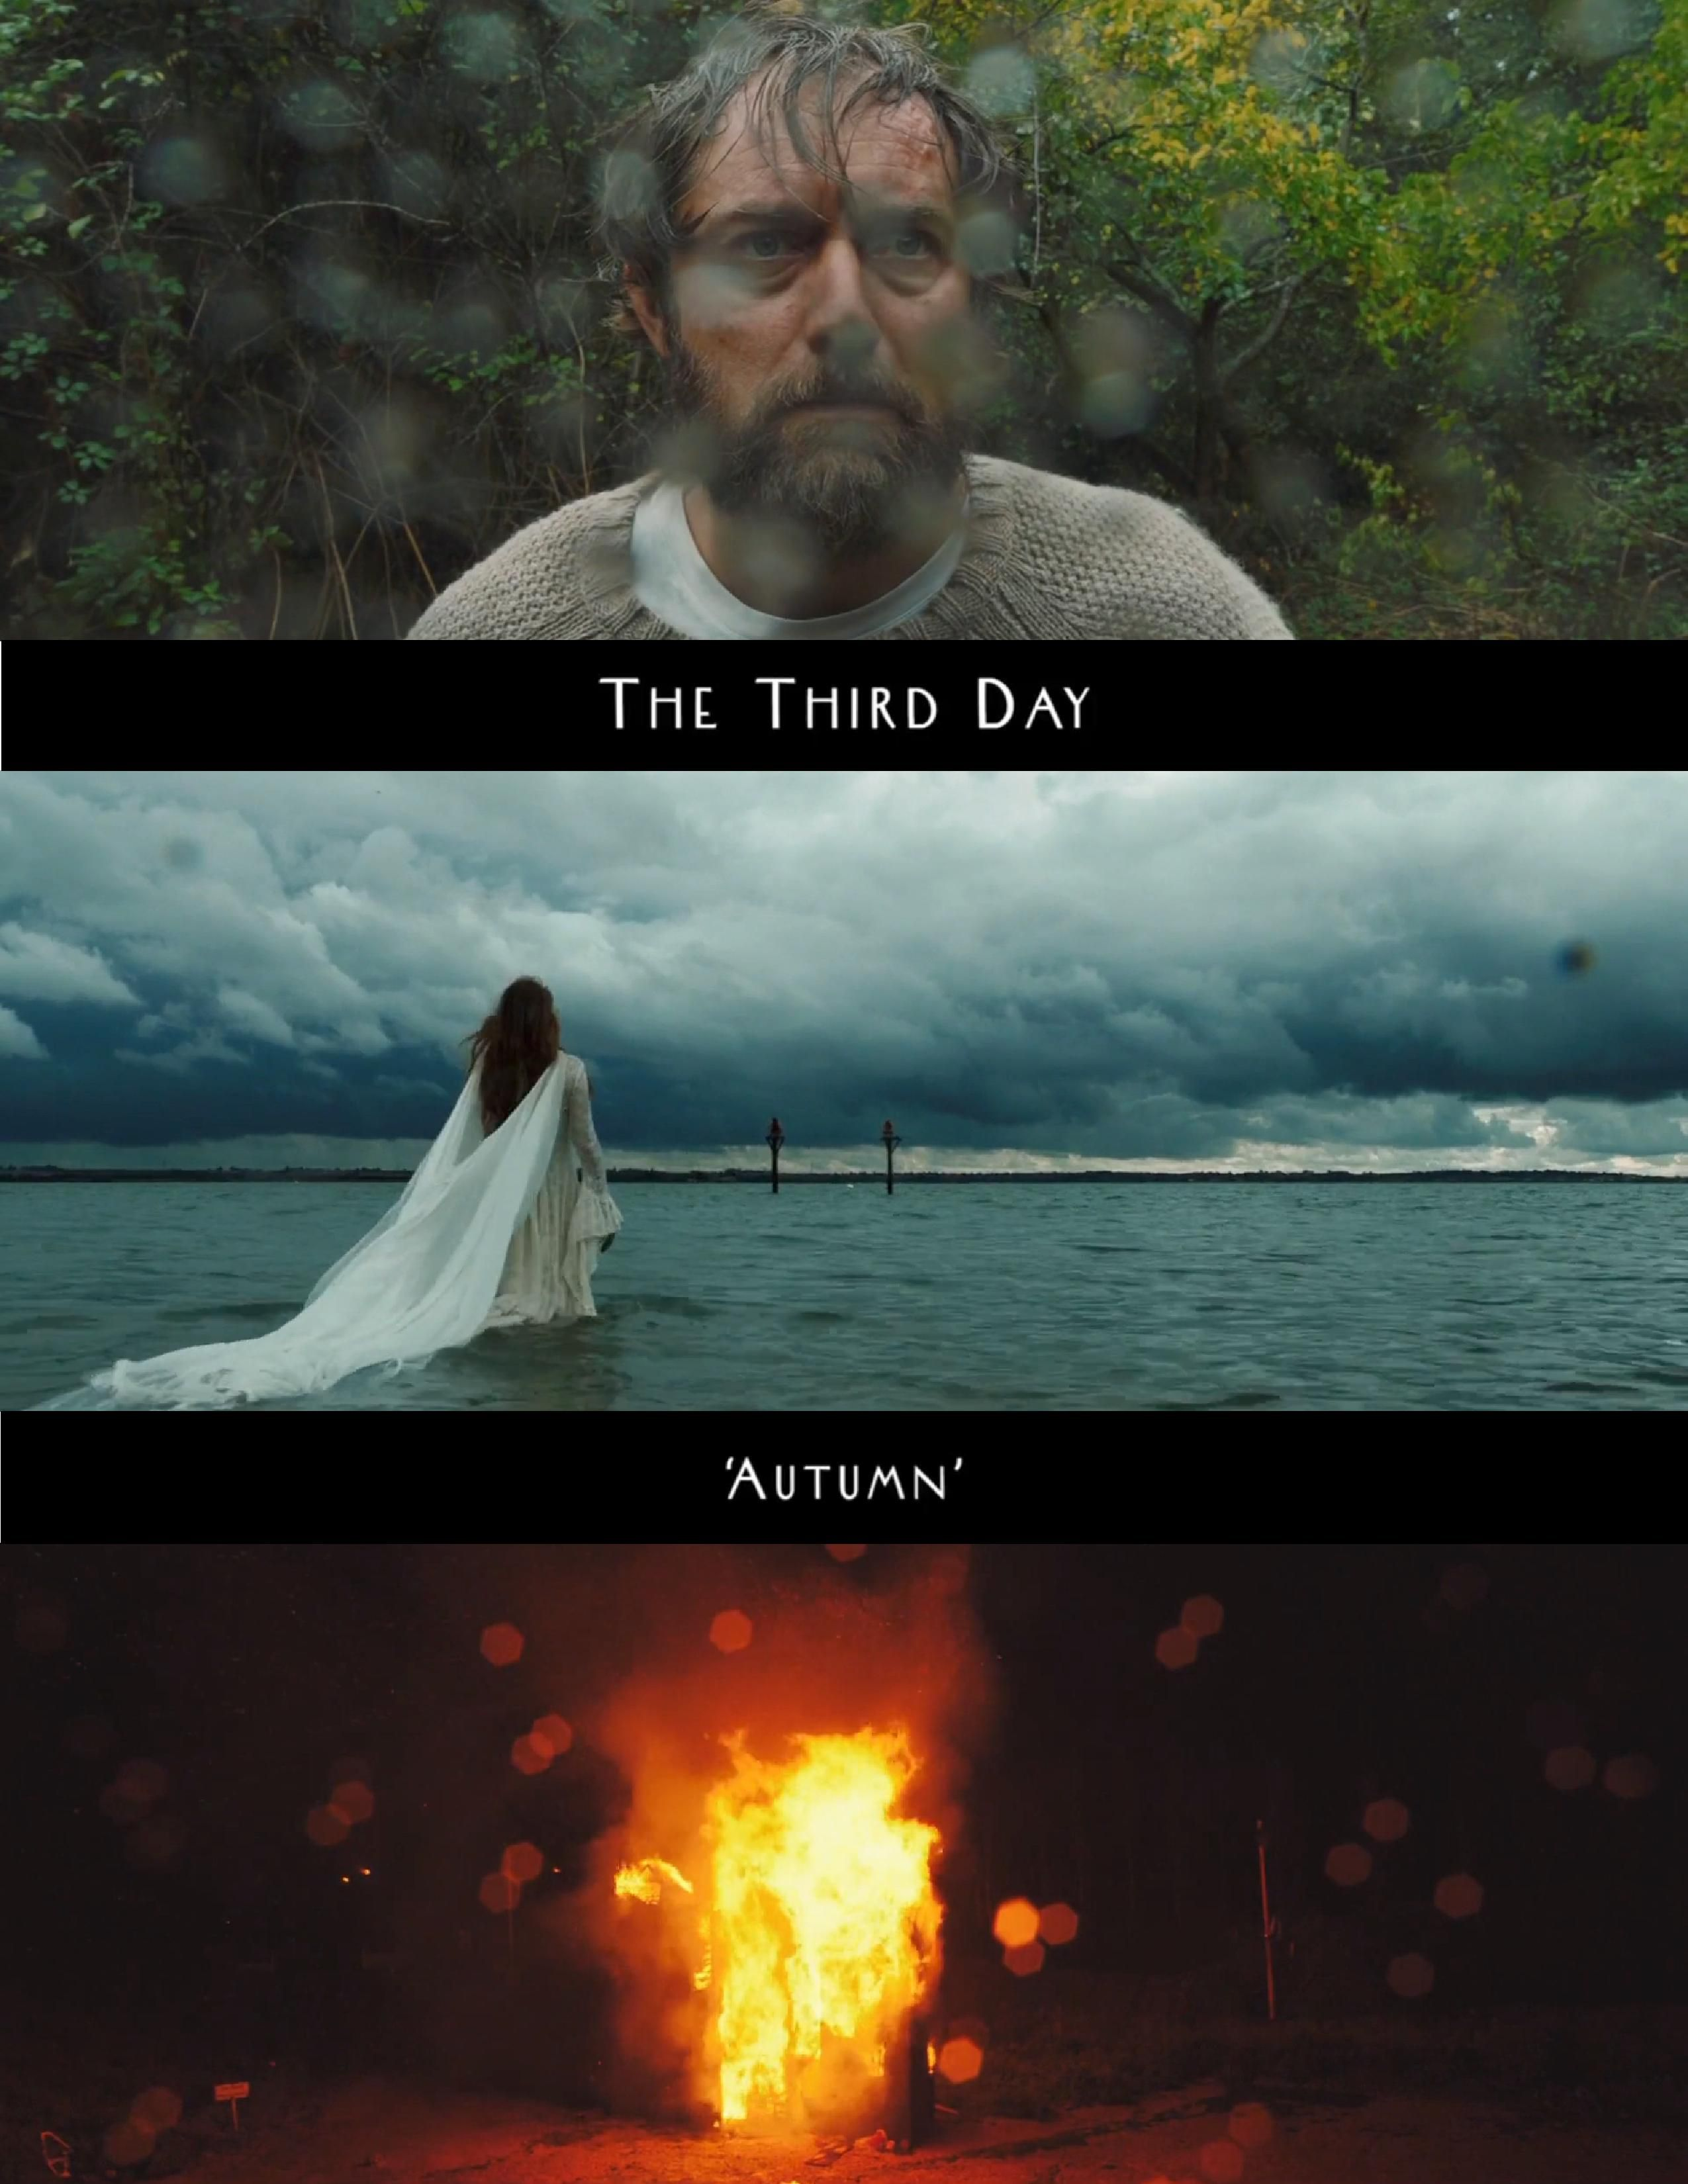 Voir Film The Third Day - Autumn - Film (2020) streaming VF gratuit complet